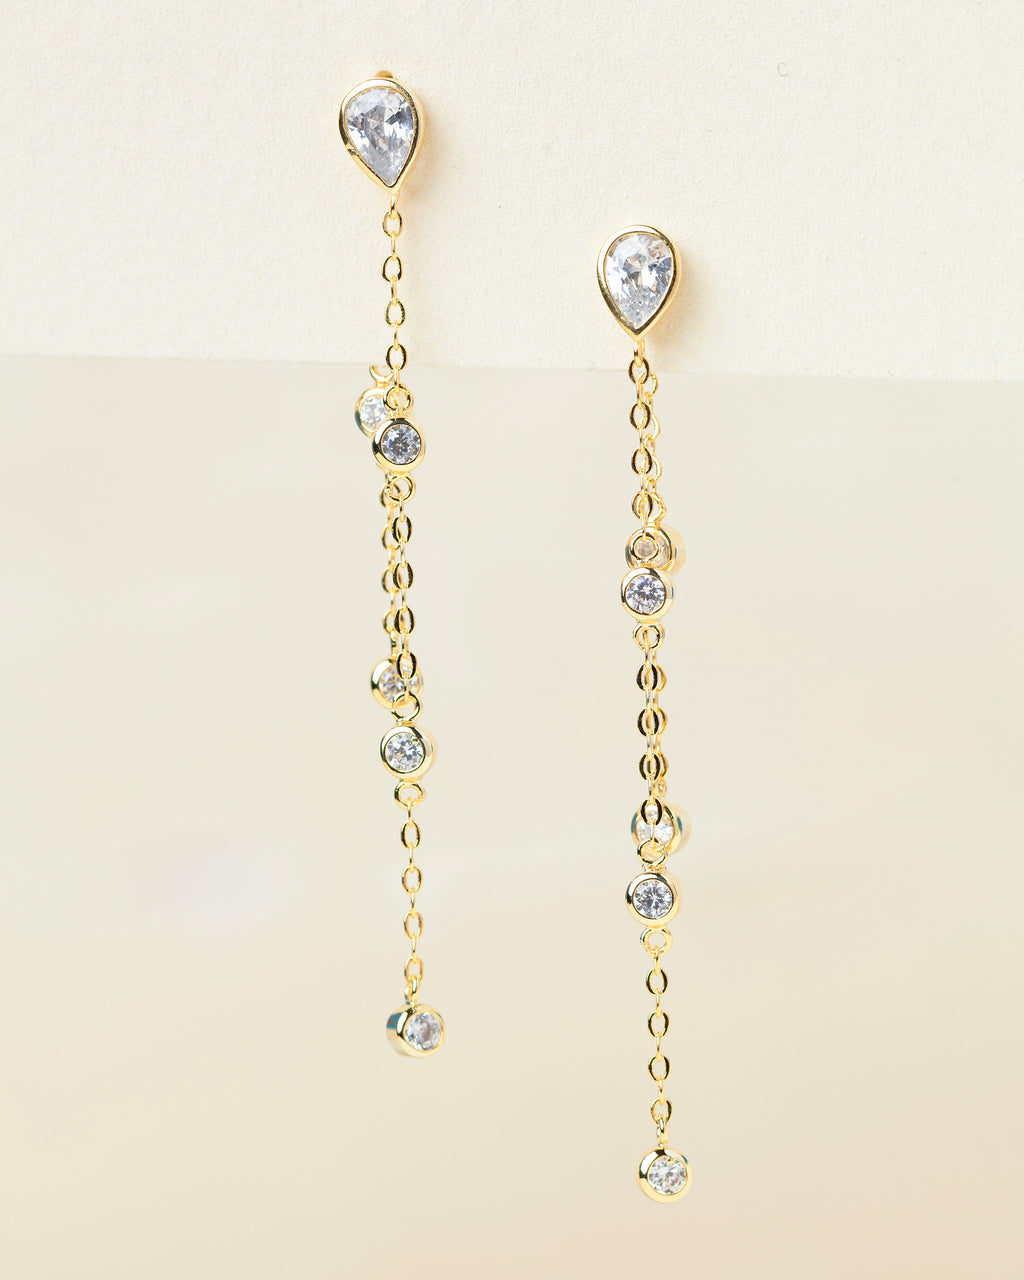 Sandra Drop Earrings